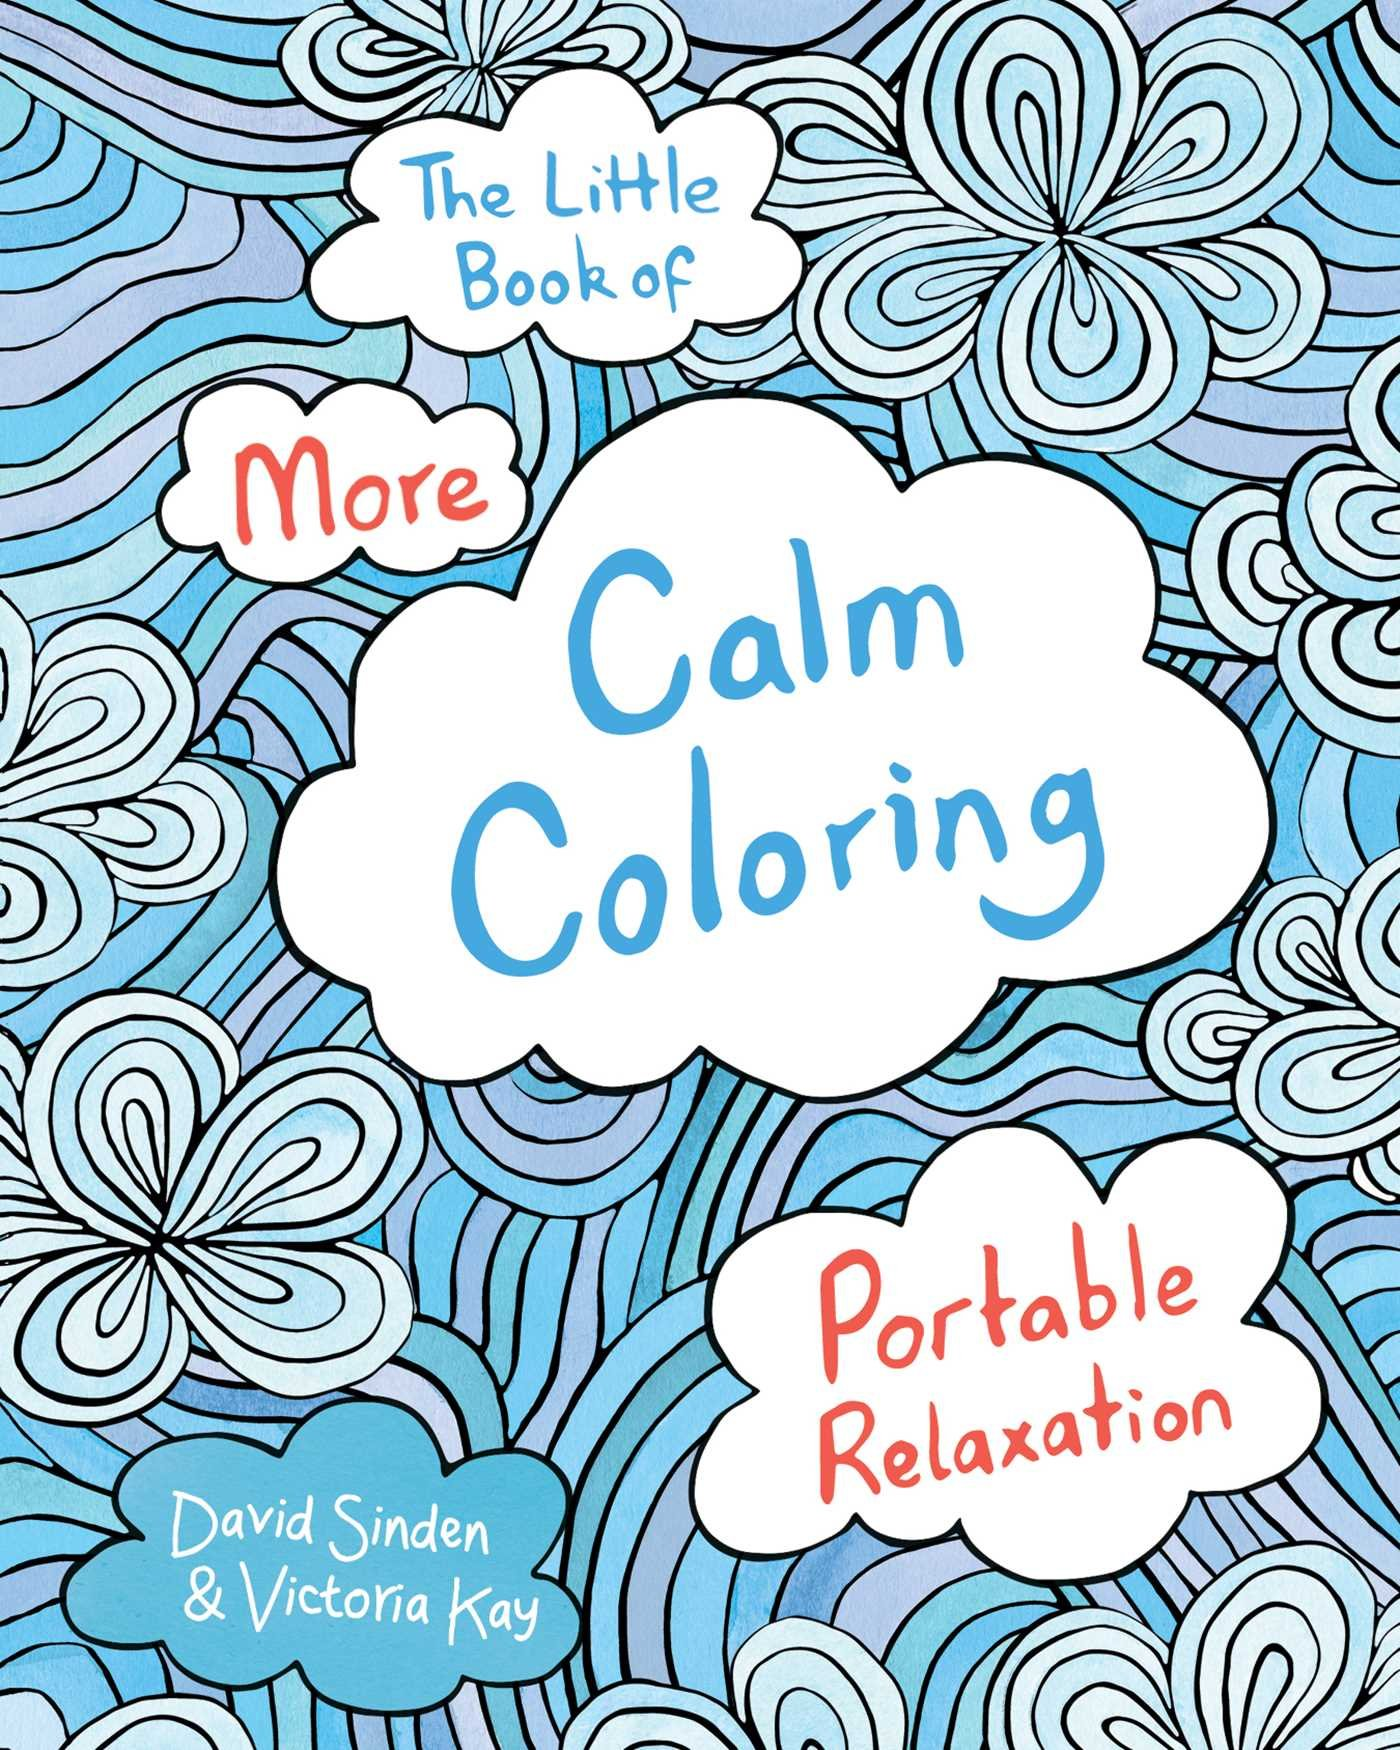 The Little Book of More Calm Coloring PDF